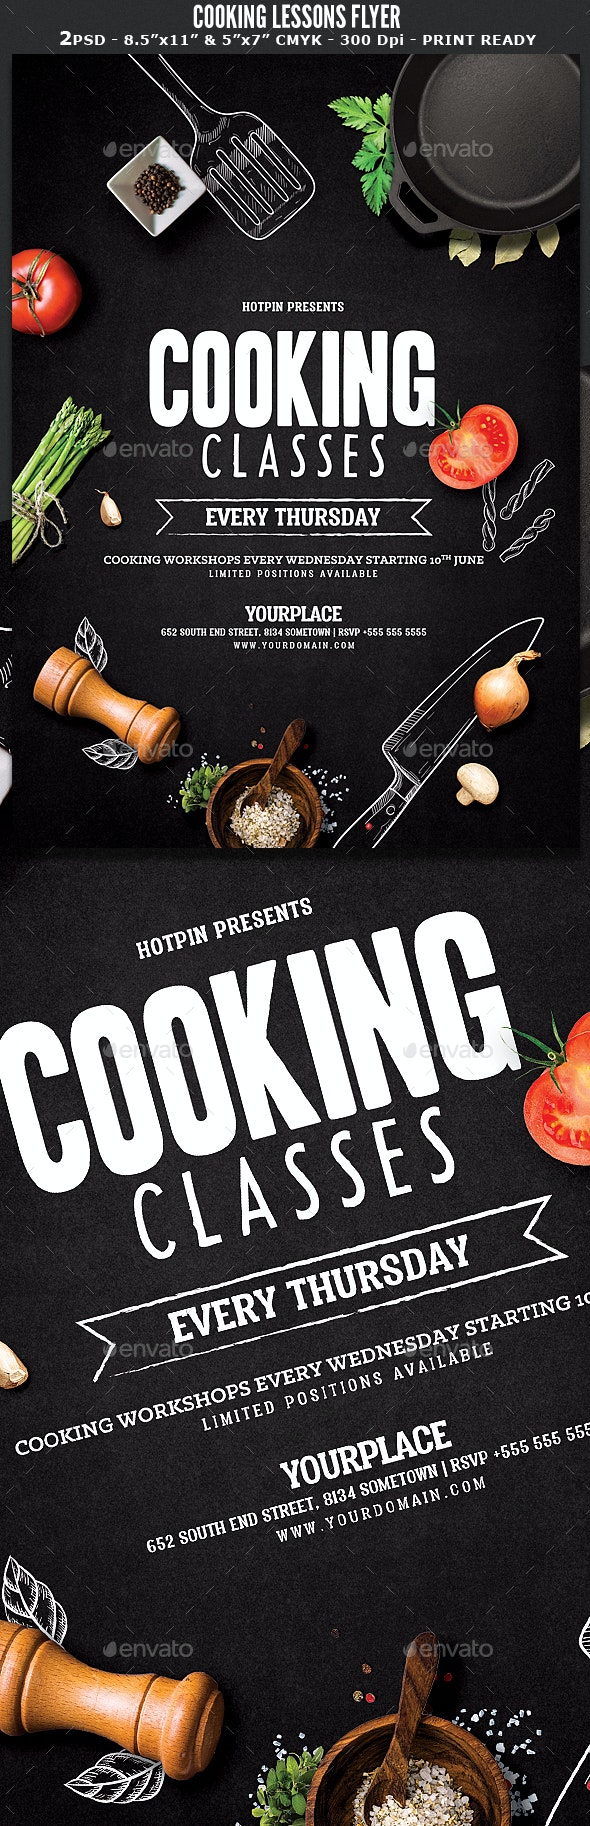 Cooking Lessons Flyer - Events Flyers